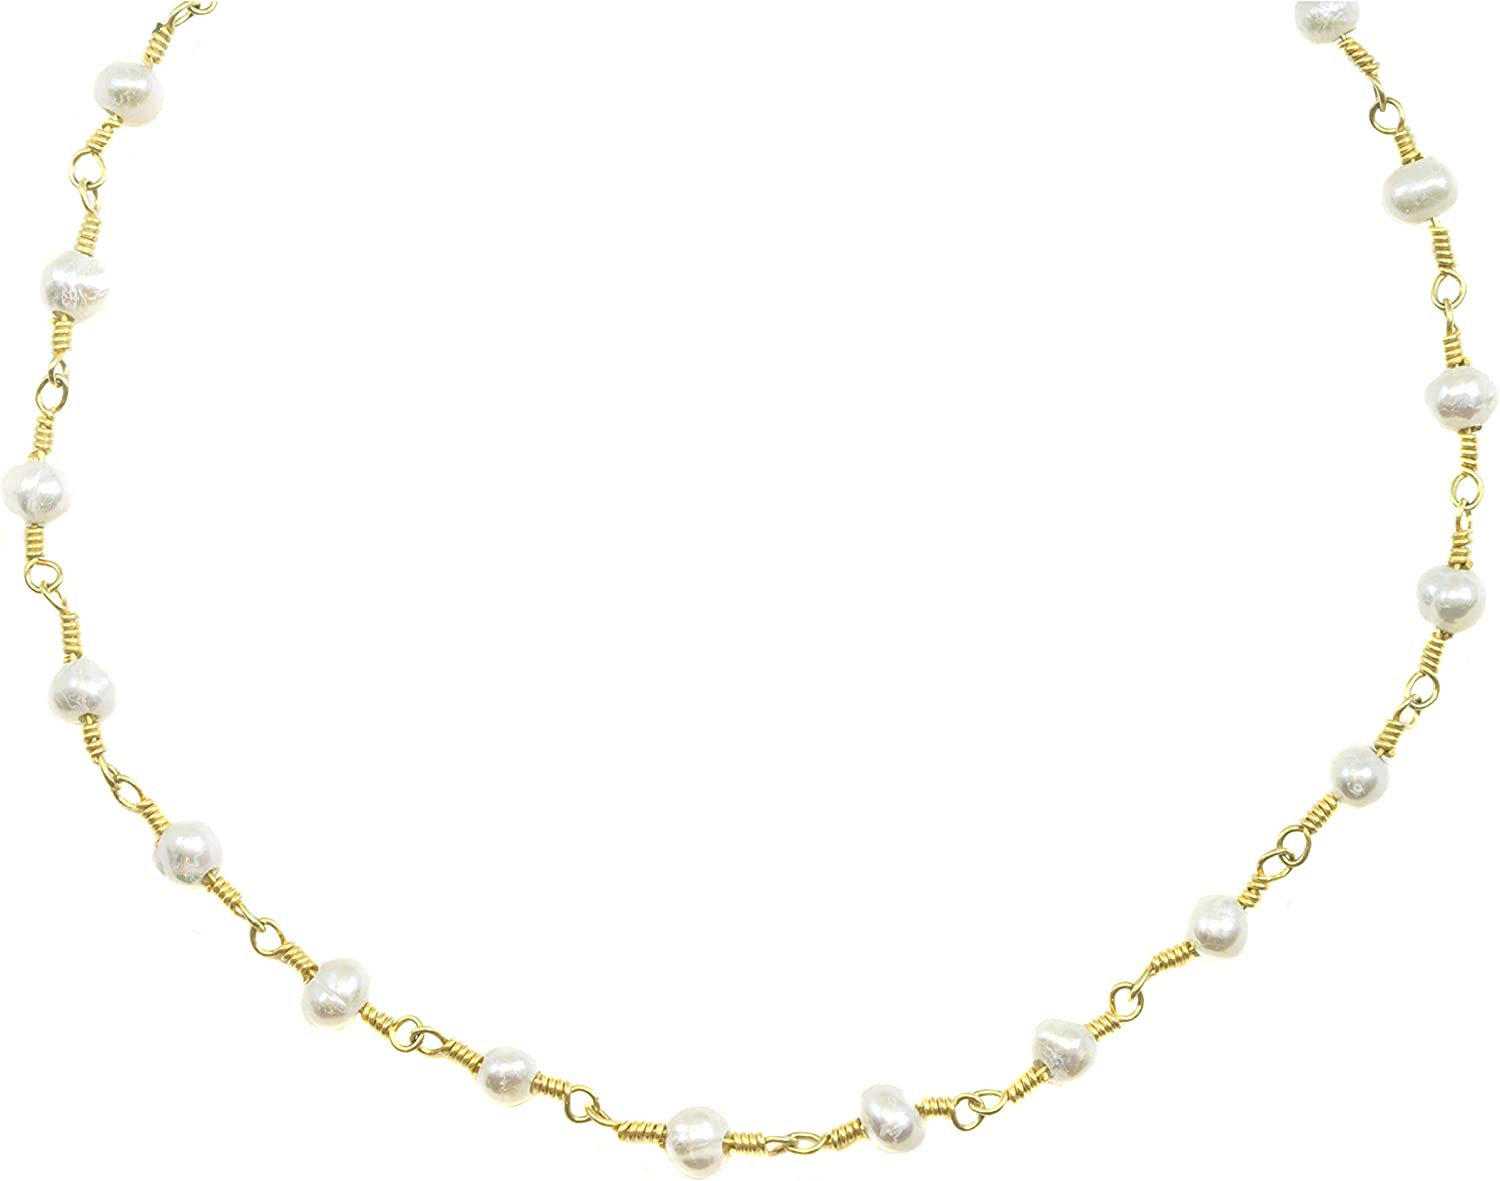 Freshwater cultured pearl on gold filled